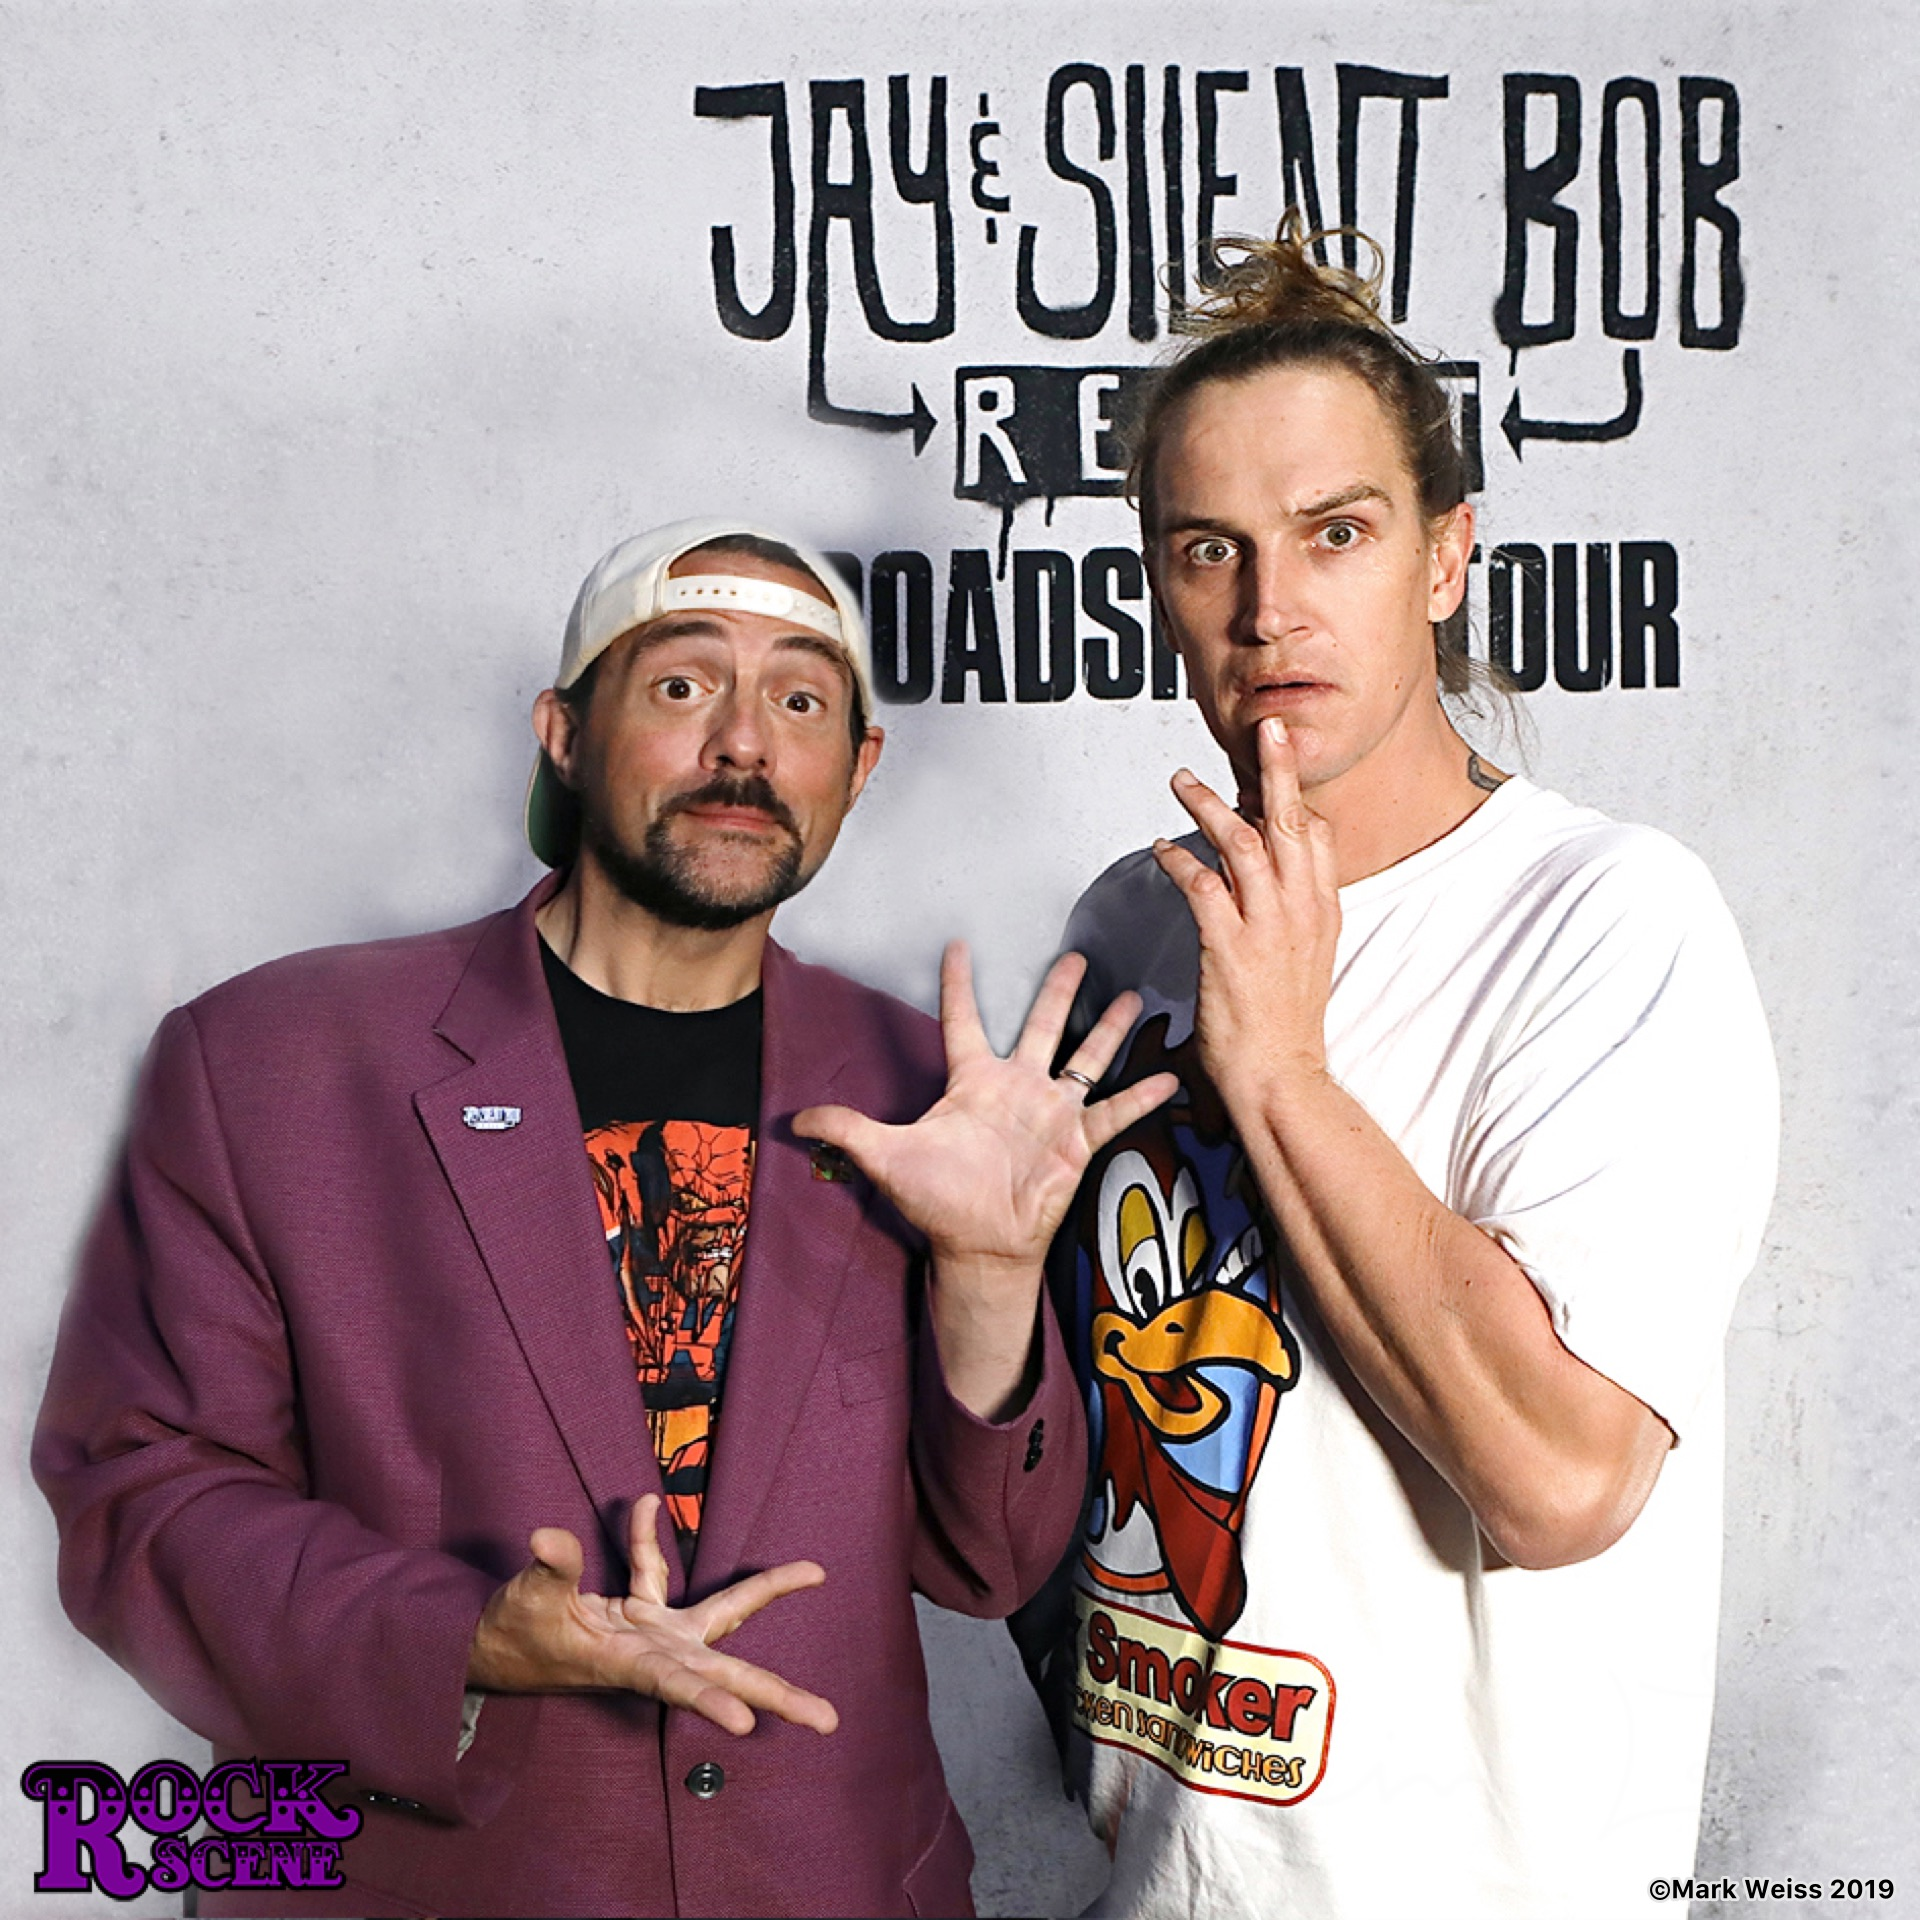 The Jay & Silent Bob Reeboot Roadshow At The Paramount Theatre, Asbury Park, NJ October 19, 2019